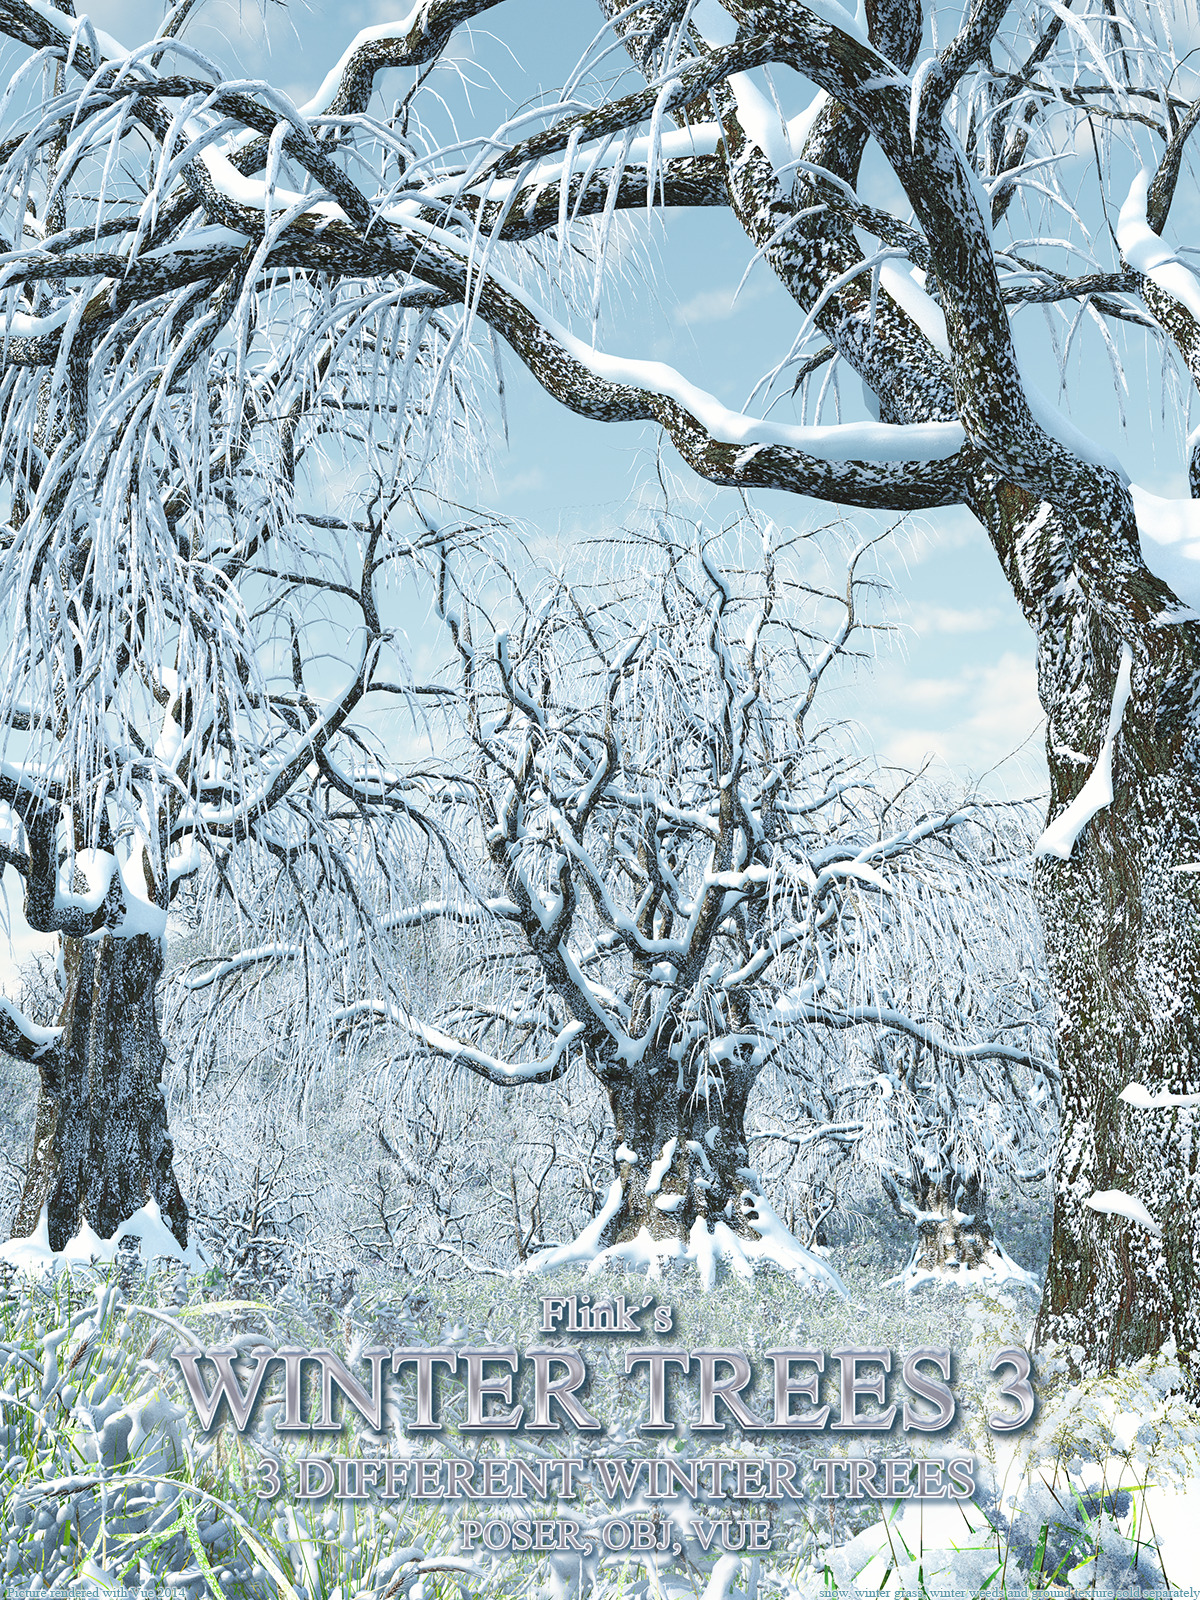 Flinks Winter Trees 3 by Flink